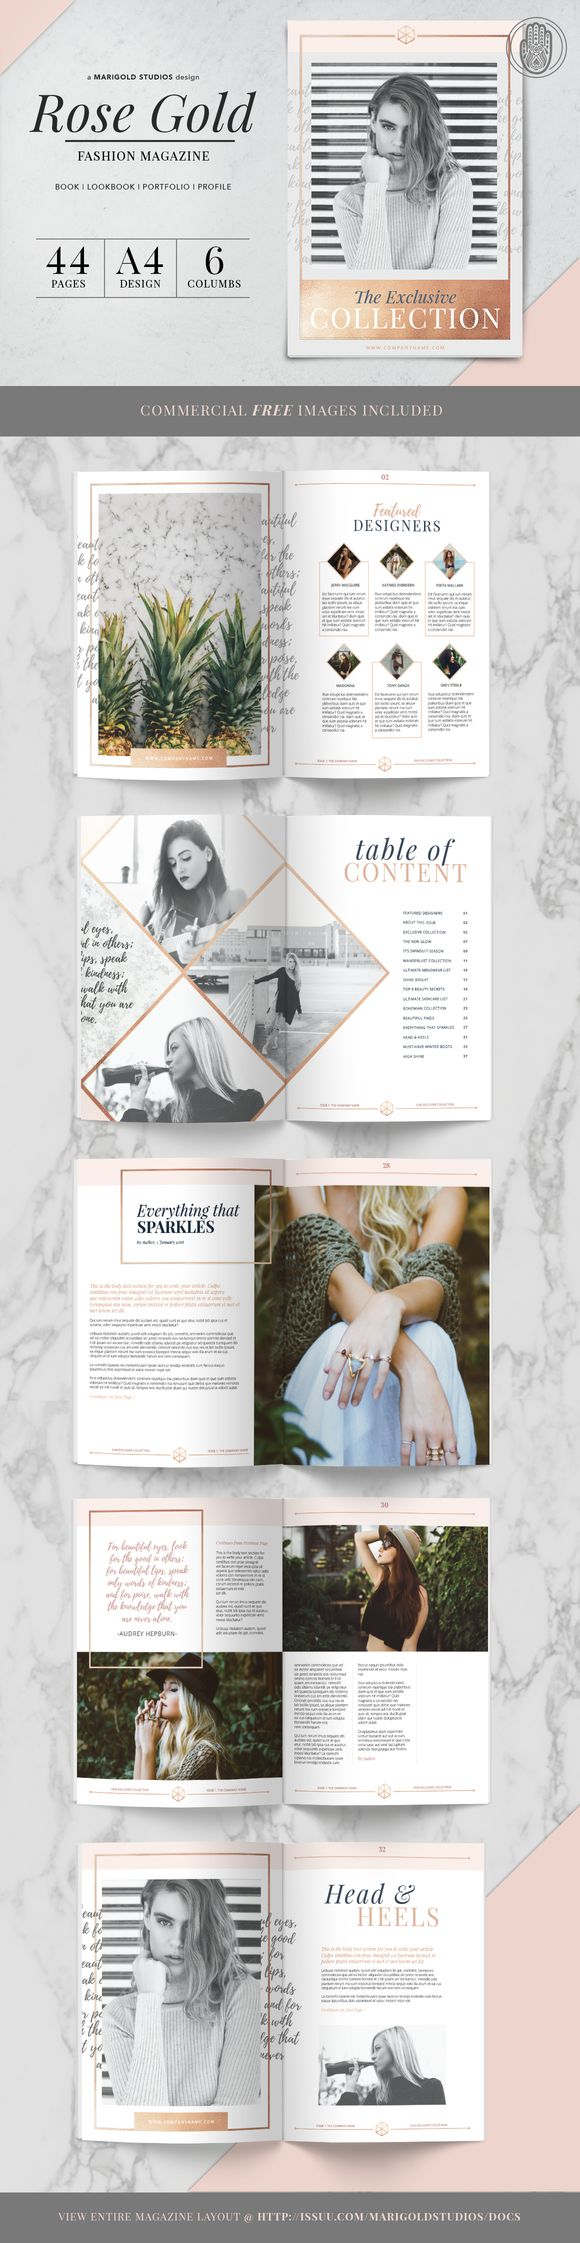 This is the magazine template I bought for my pricing guide that I'm designing.